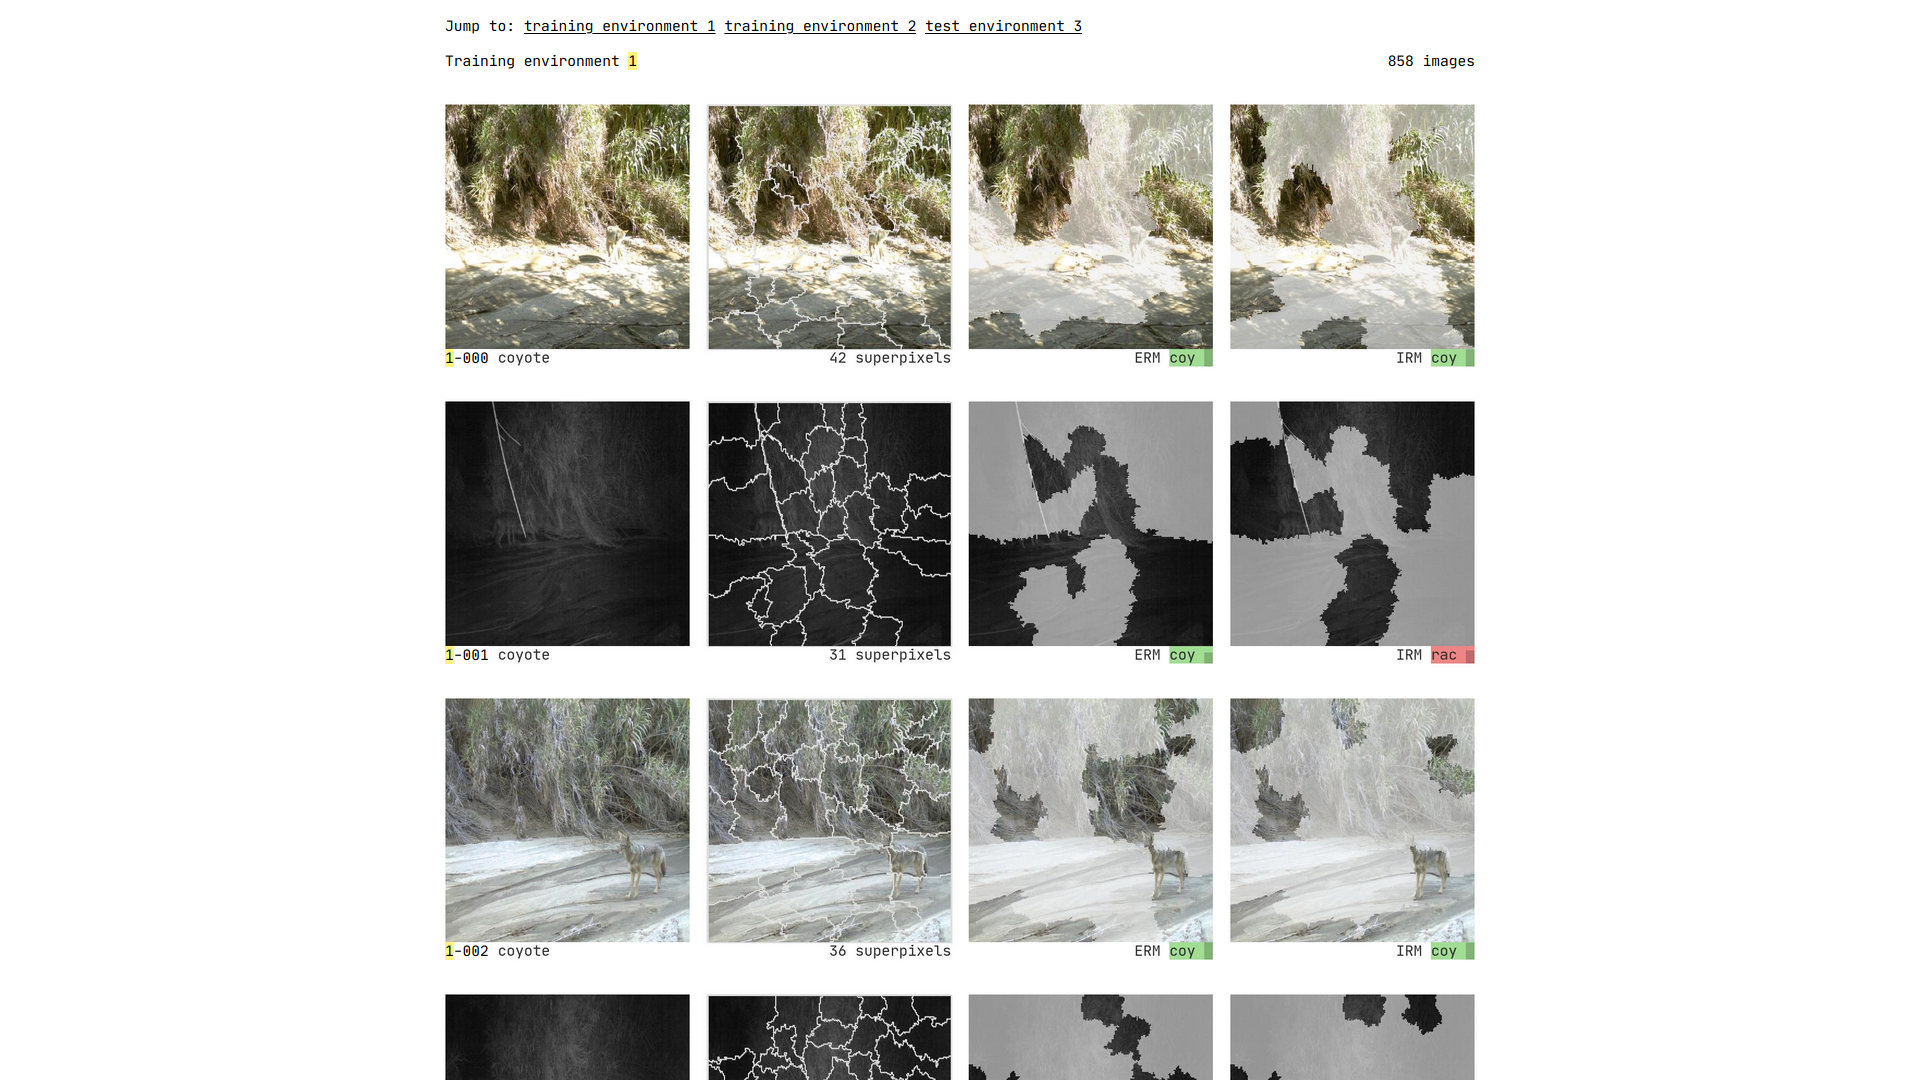 View all the images in the dataset on the all page.